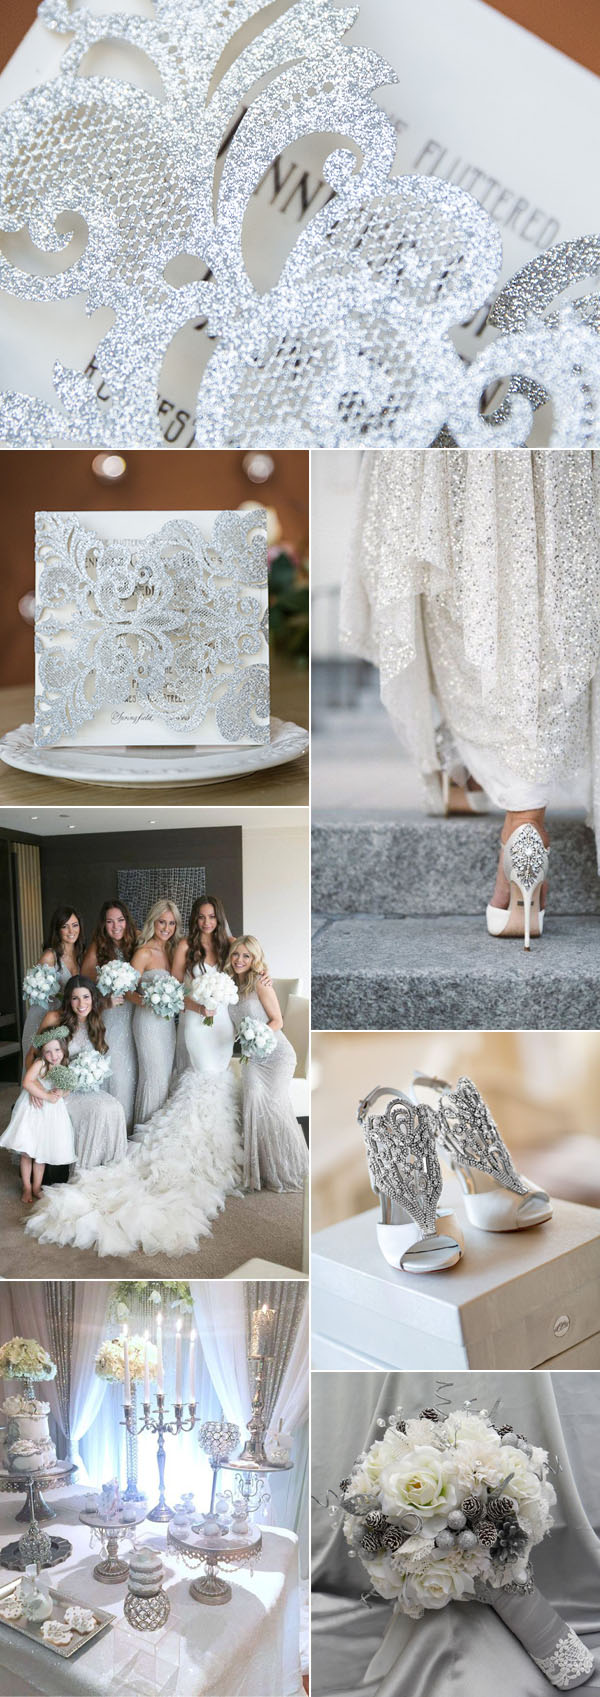 classy silver and white winter glamorous wedding ideas and invitations